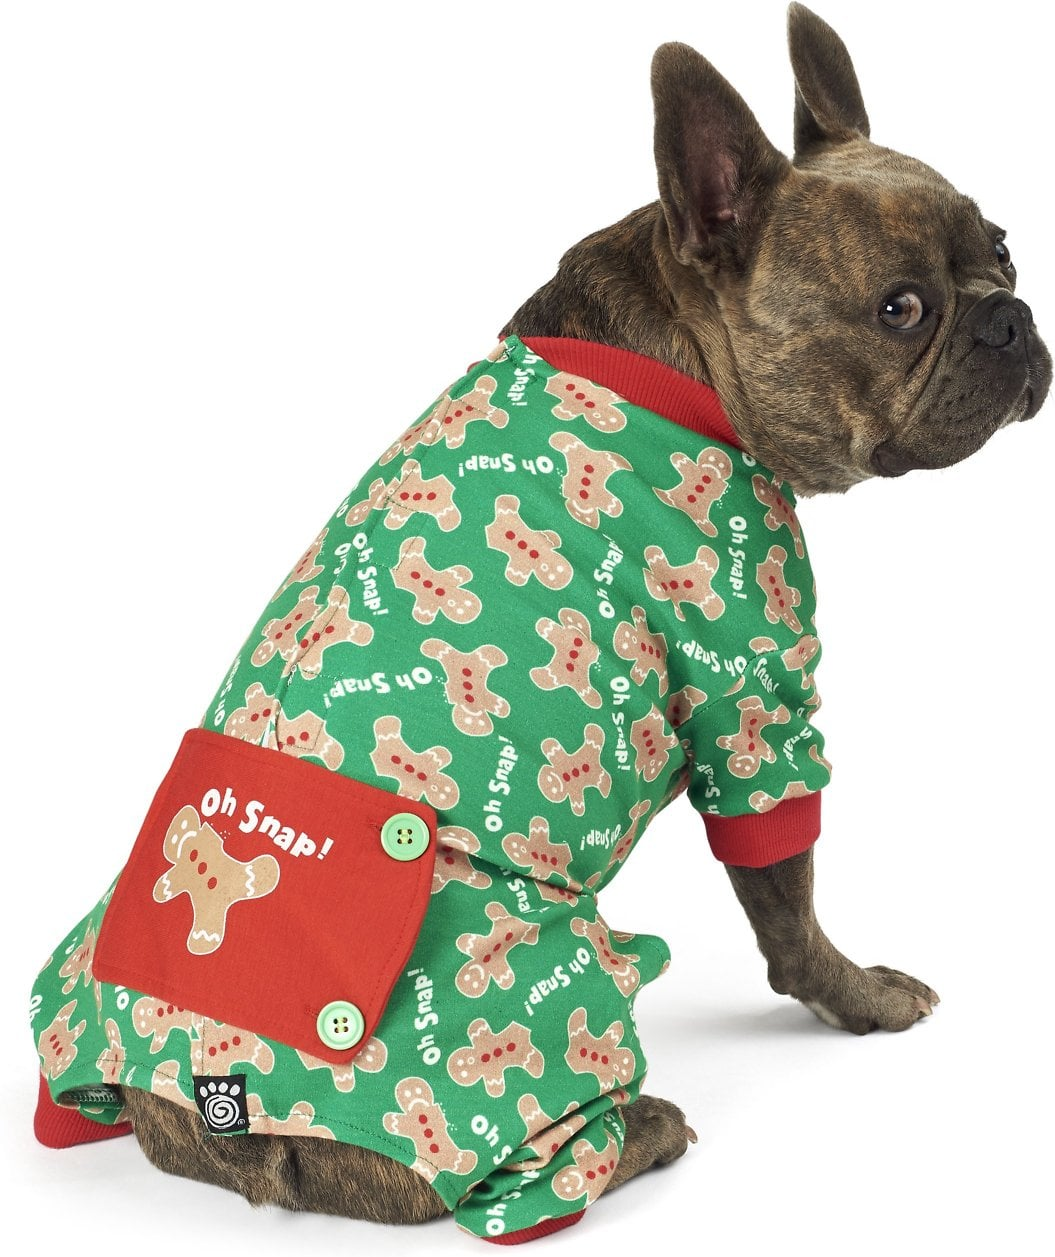 Christmas Pajamas For Dog.Petrageous Designs Oh Snap Gingerbread Dog Pajamas You Ll